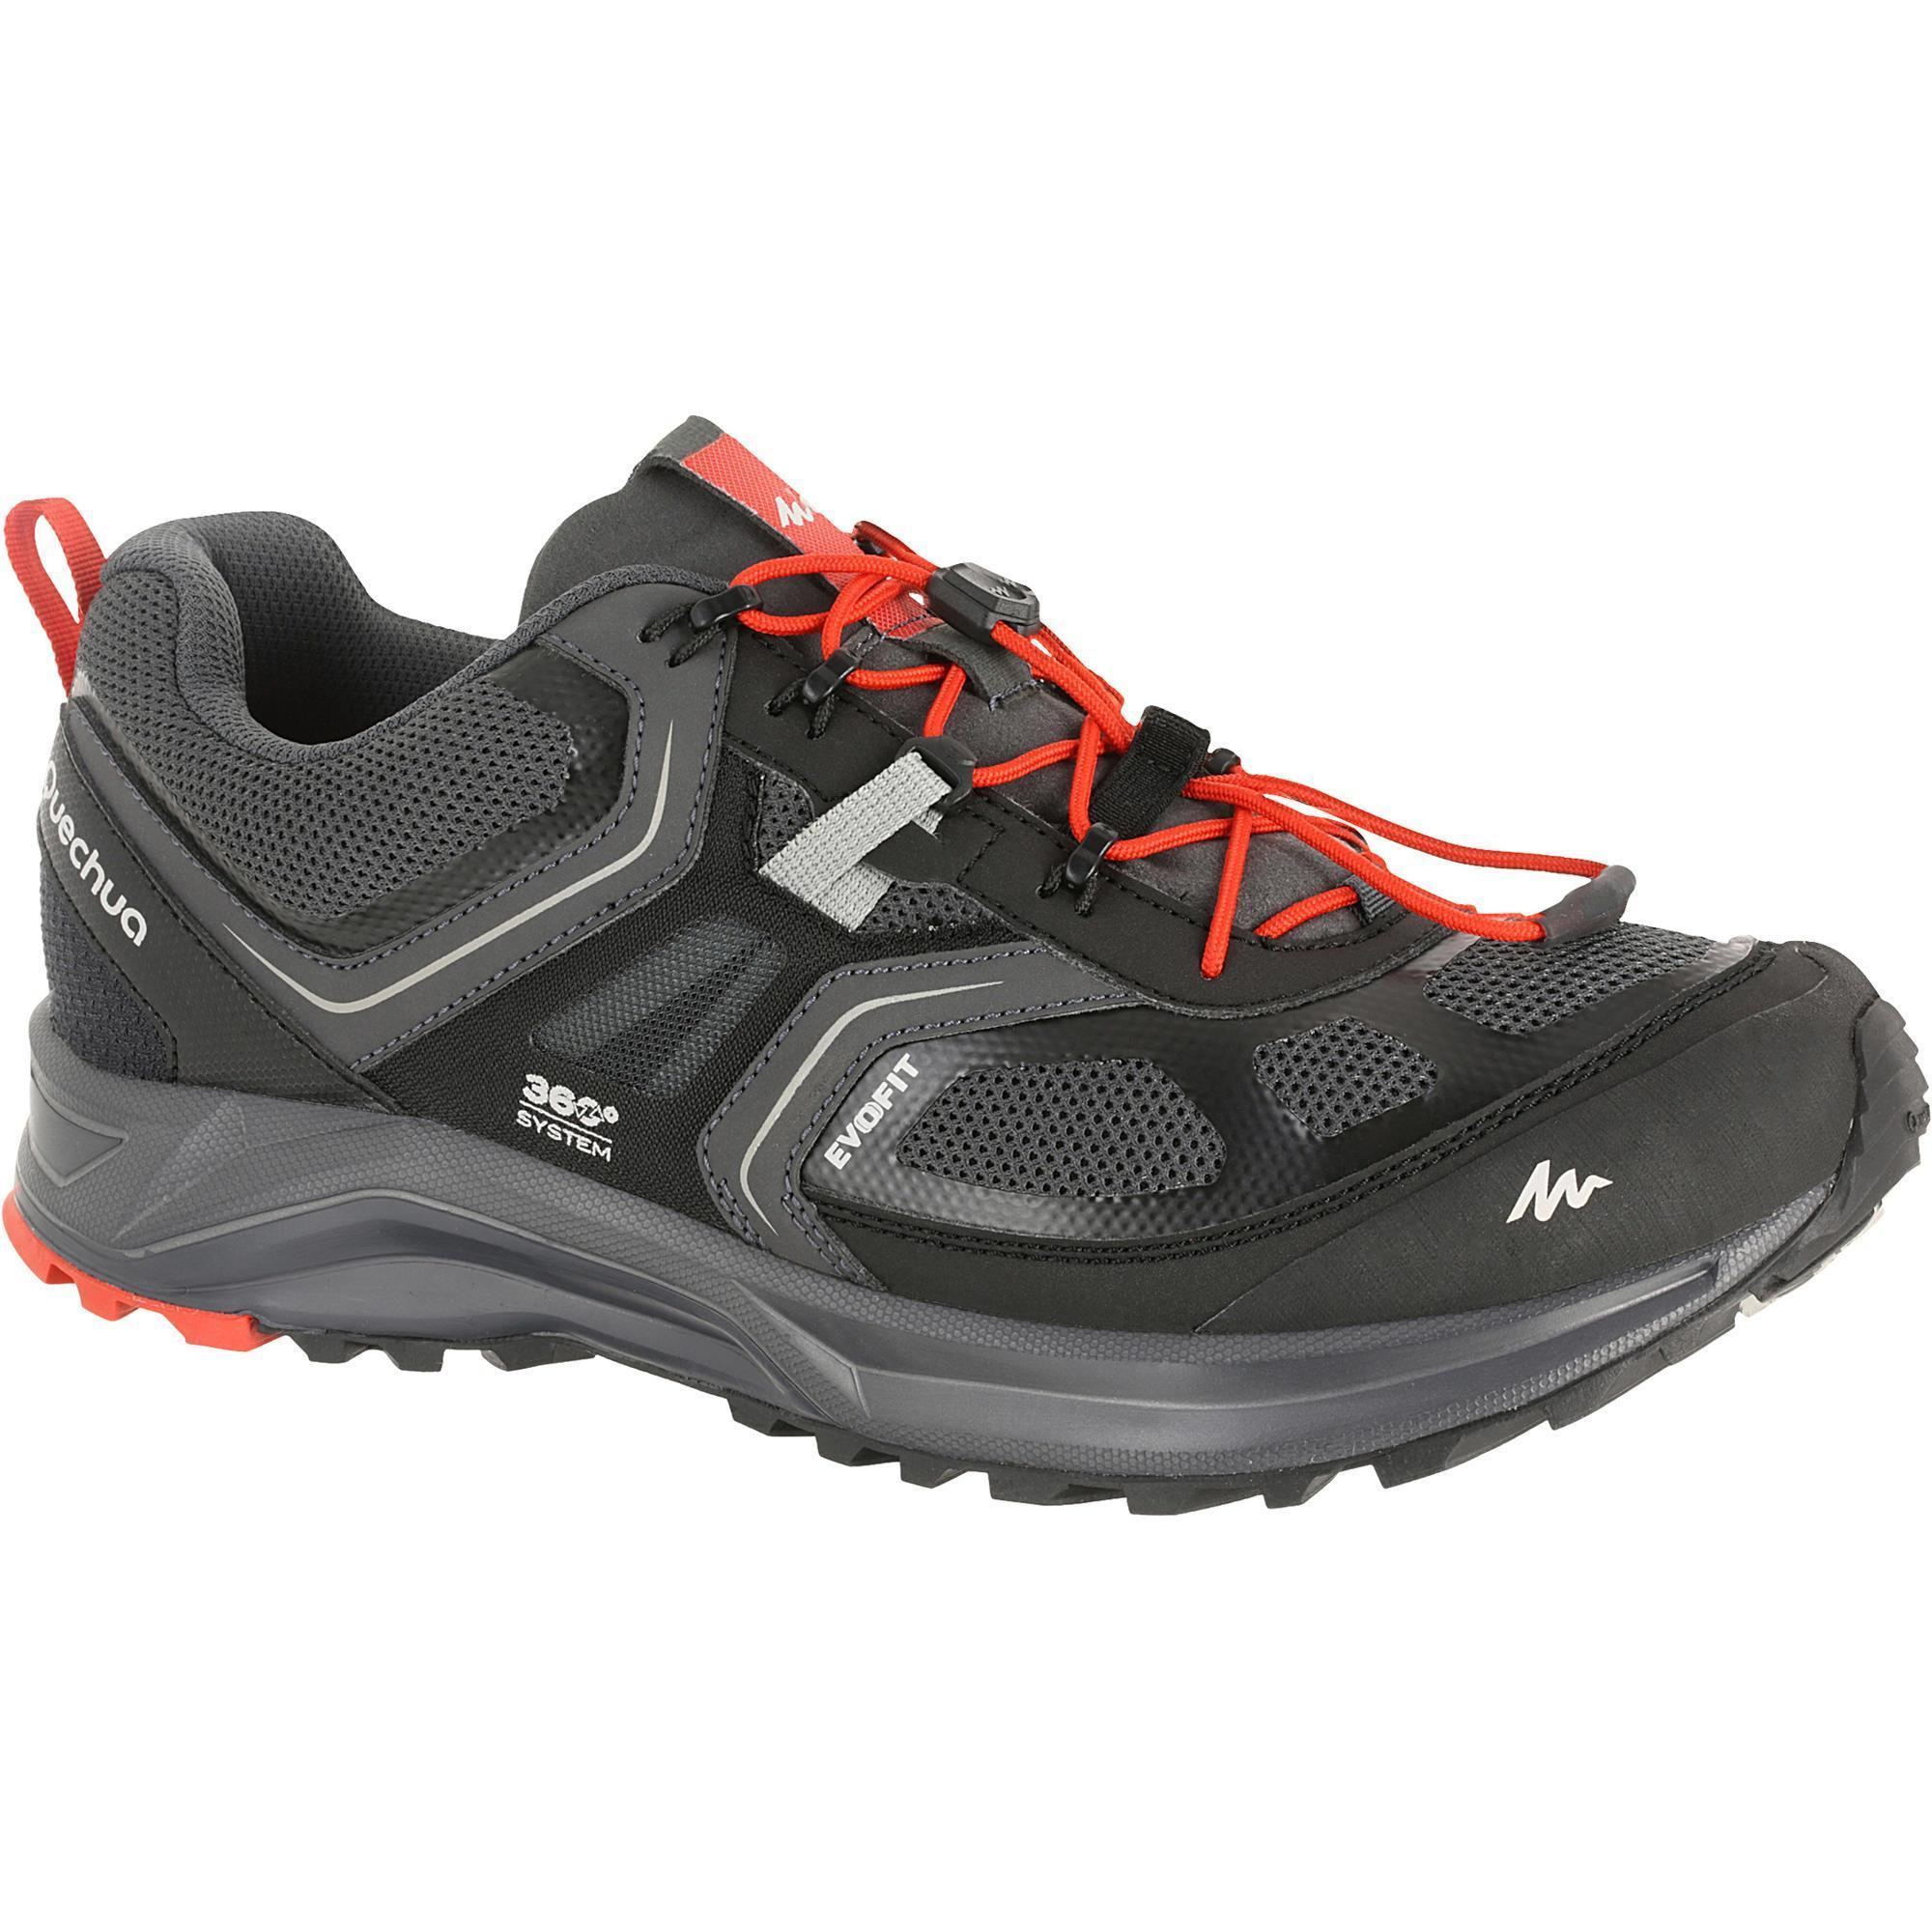 Forclaz 500 Helium Men S Quick Hiking Shoes Black Quechua